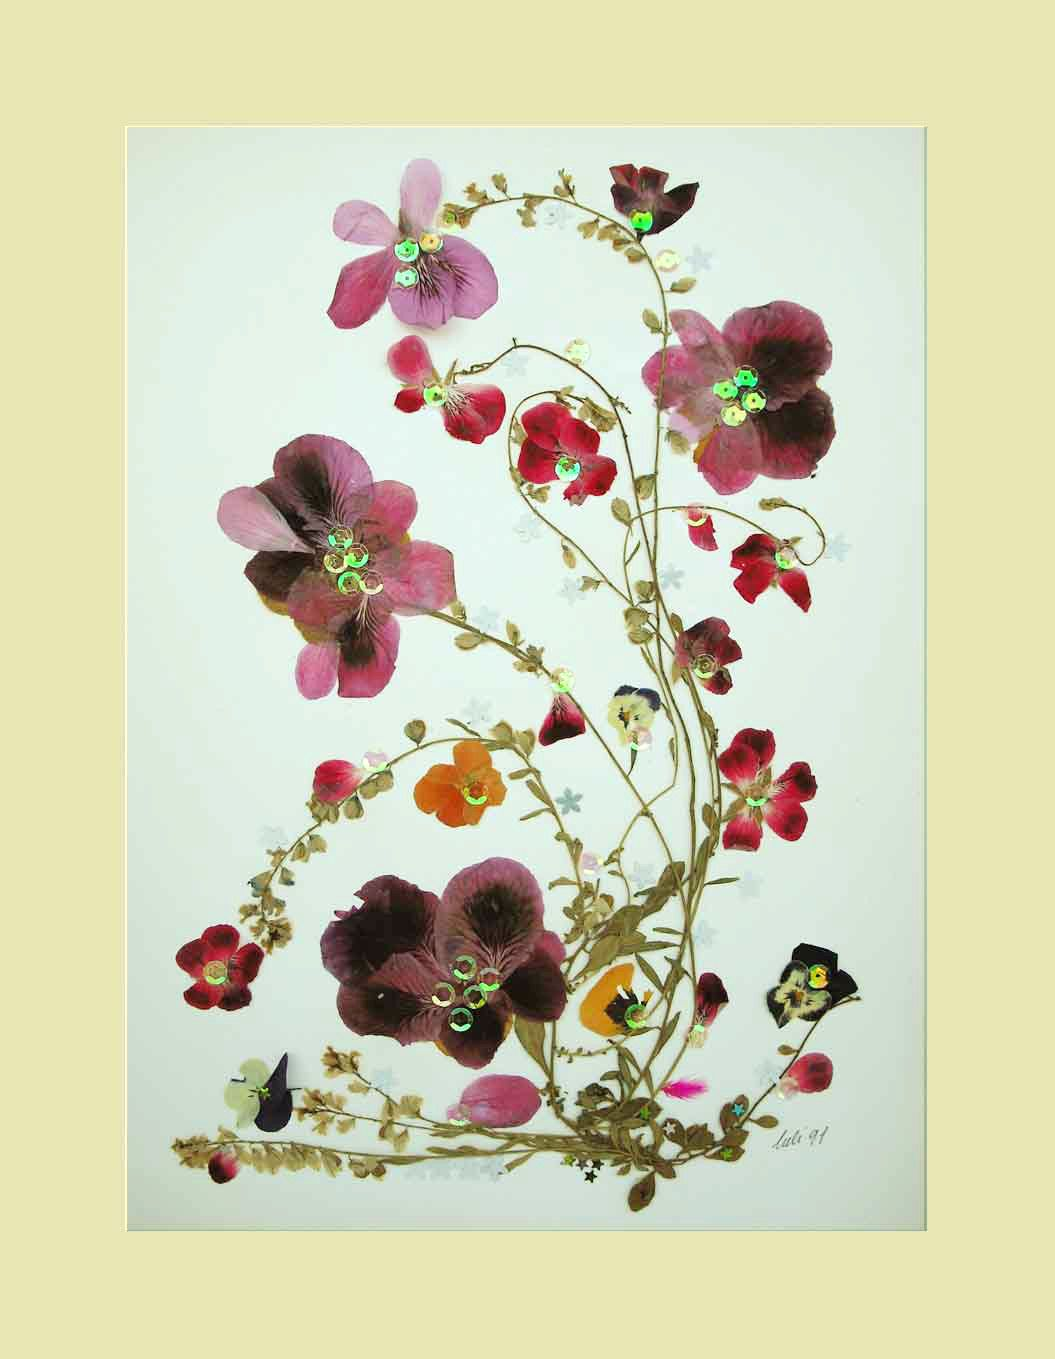 How to dry leaves and flowers for herbarium and paintings